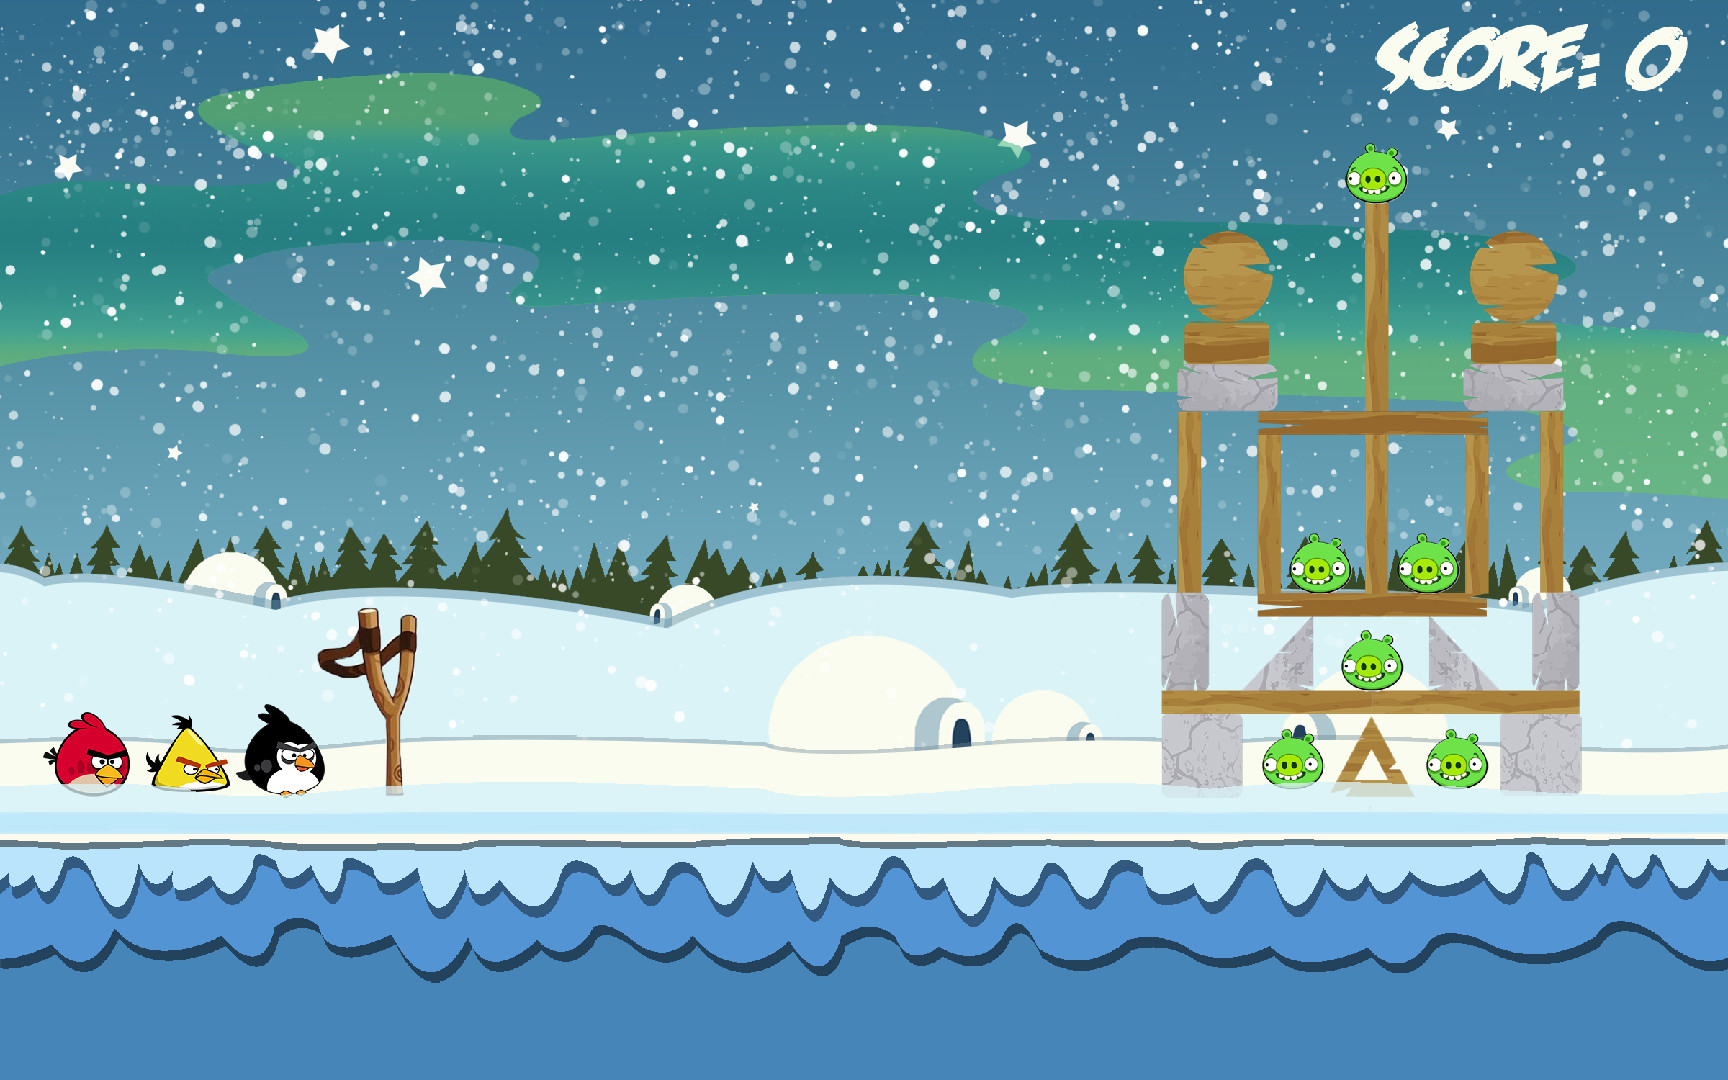 Jordan cameron angrybirds winterscene level3